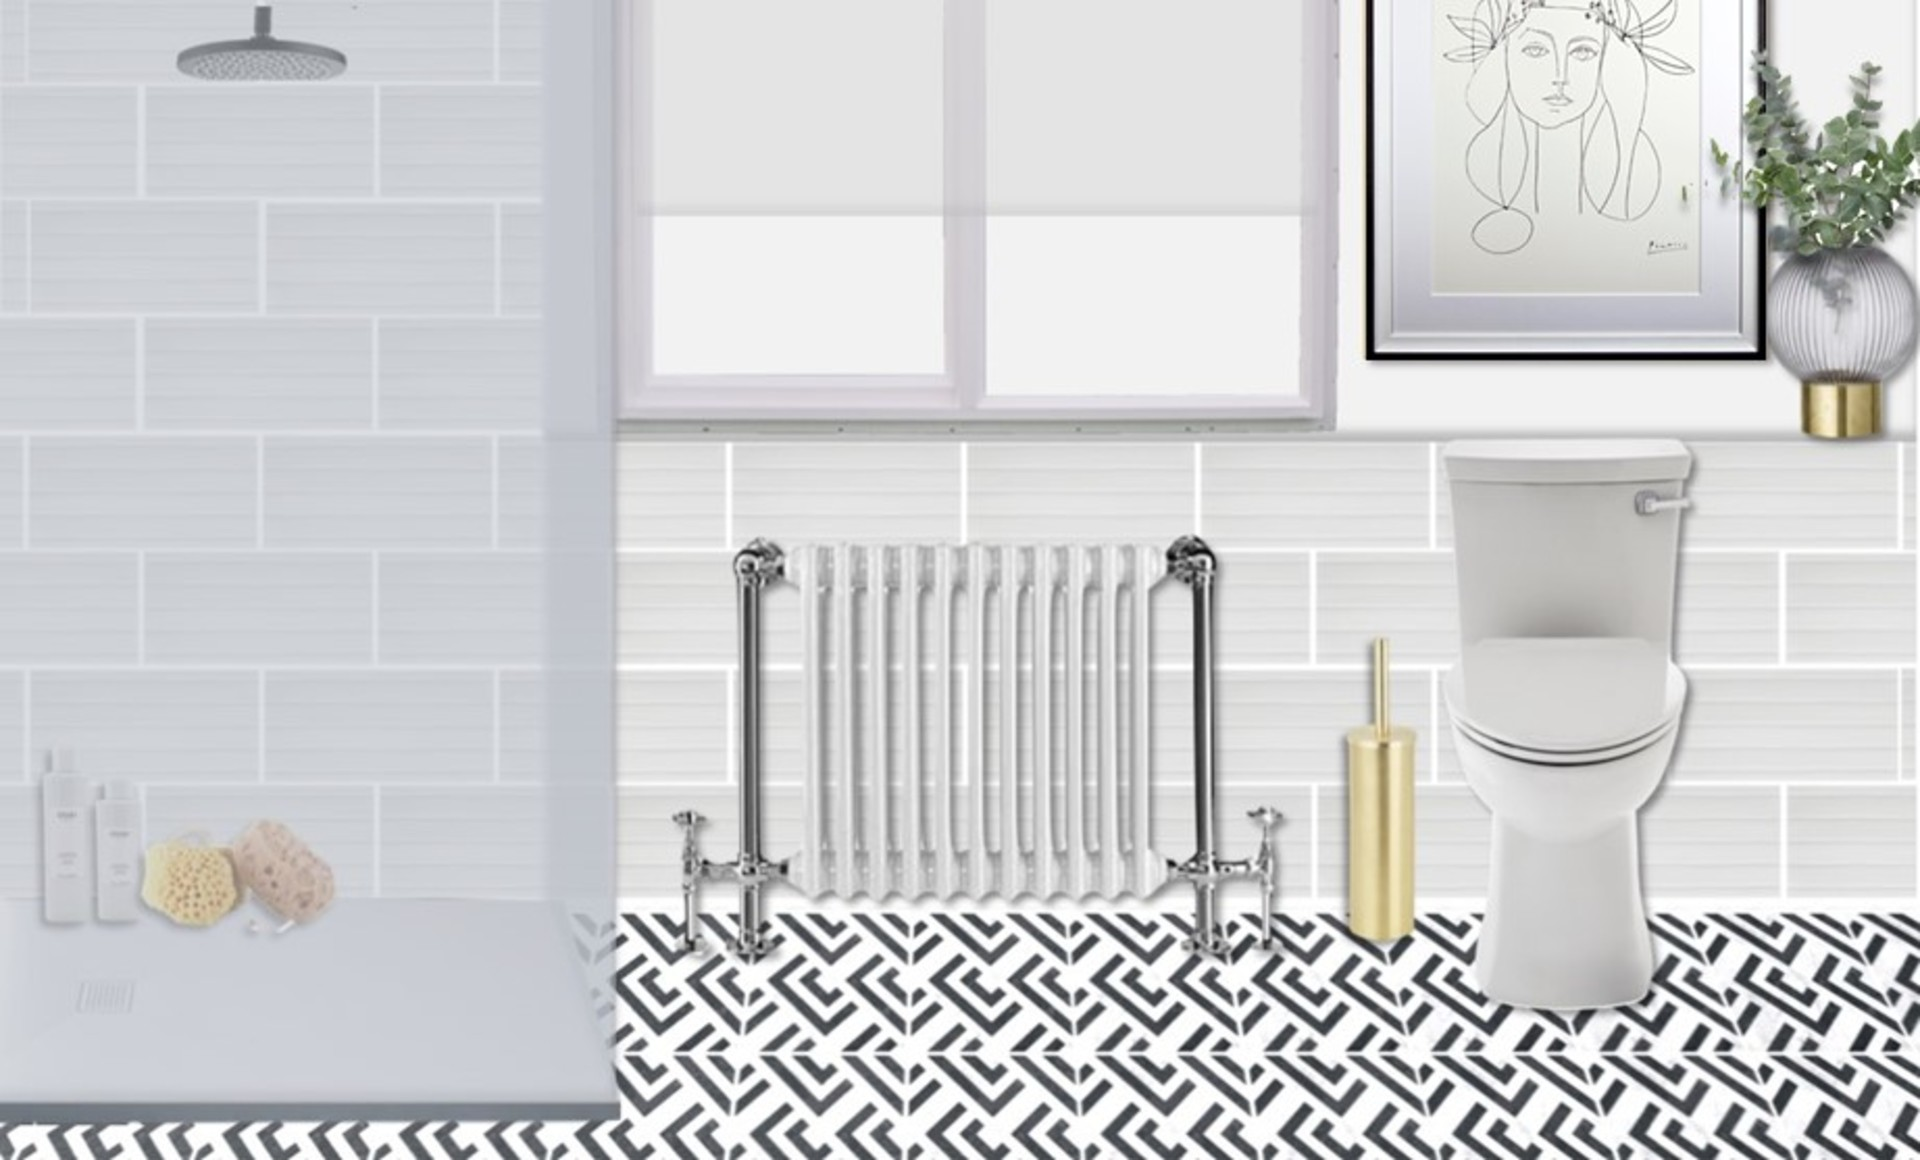 Traditional bathroom with modern brass accents, wall art and monochrome patterned tiles